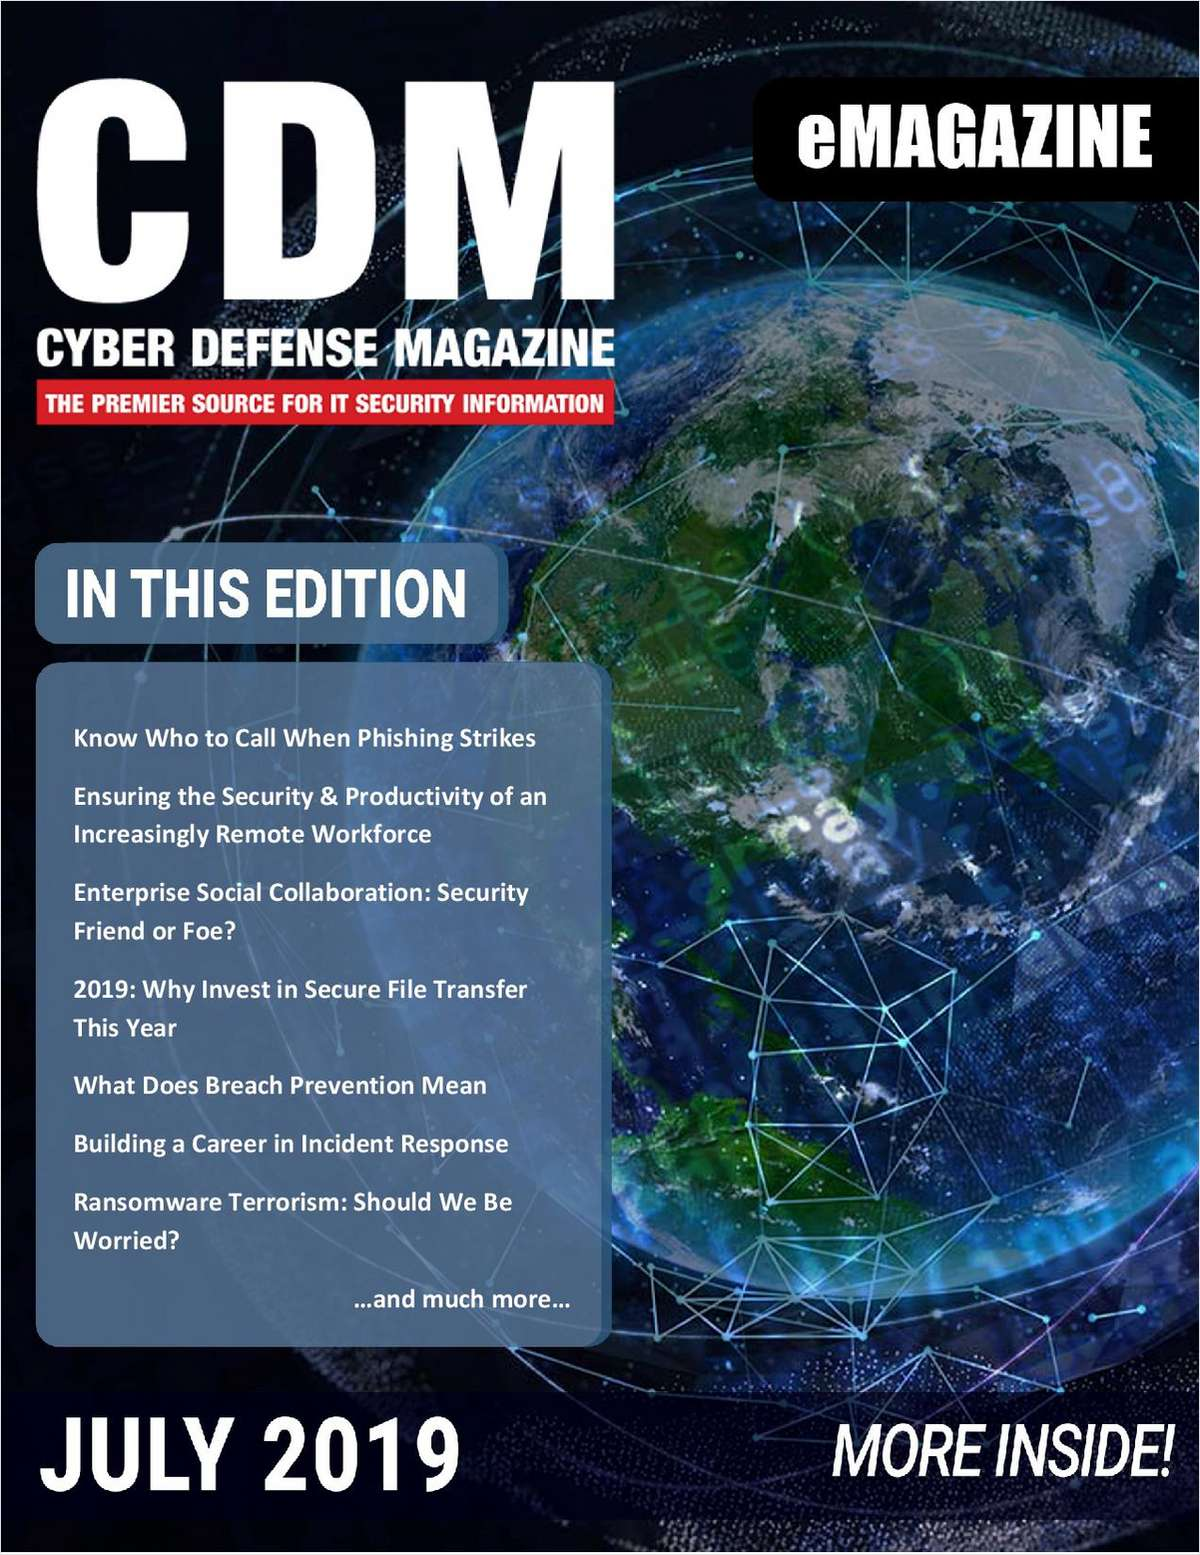 Cyber Defense eMagazine - July 2019 Edition